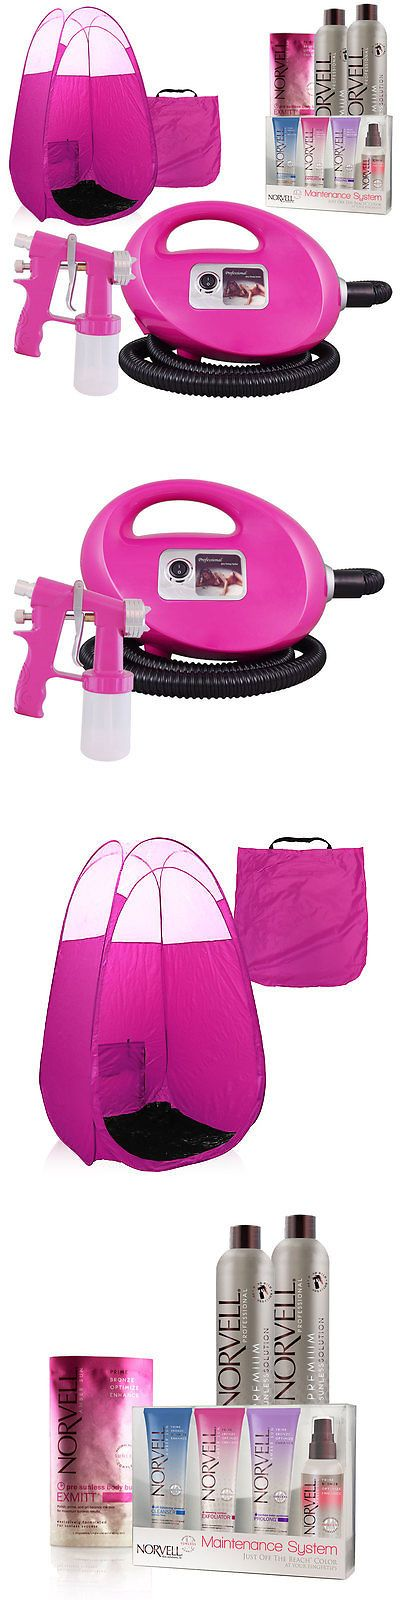 Sunless Tanning Products: Pink Fascination Spray Tanning Machine, Pink Tent, Tanning Solution, Sunless Kit -> BUY IT NOW ONLY: $189 on eBay!